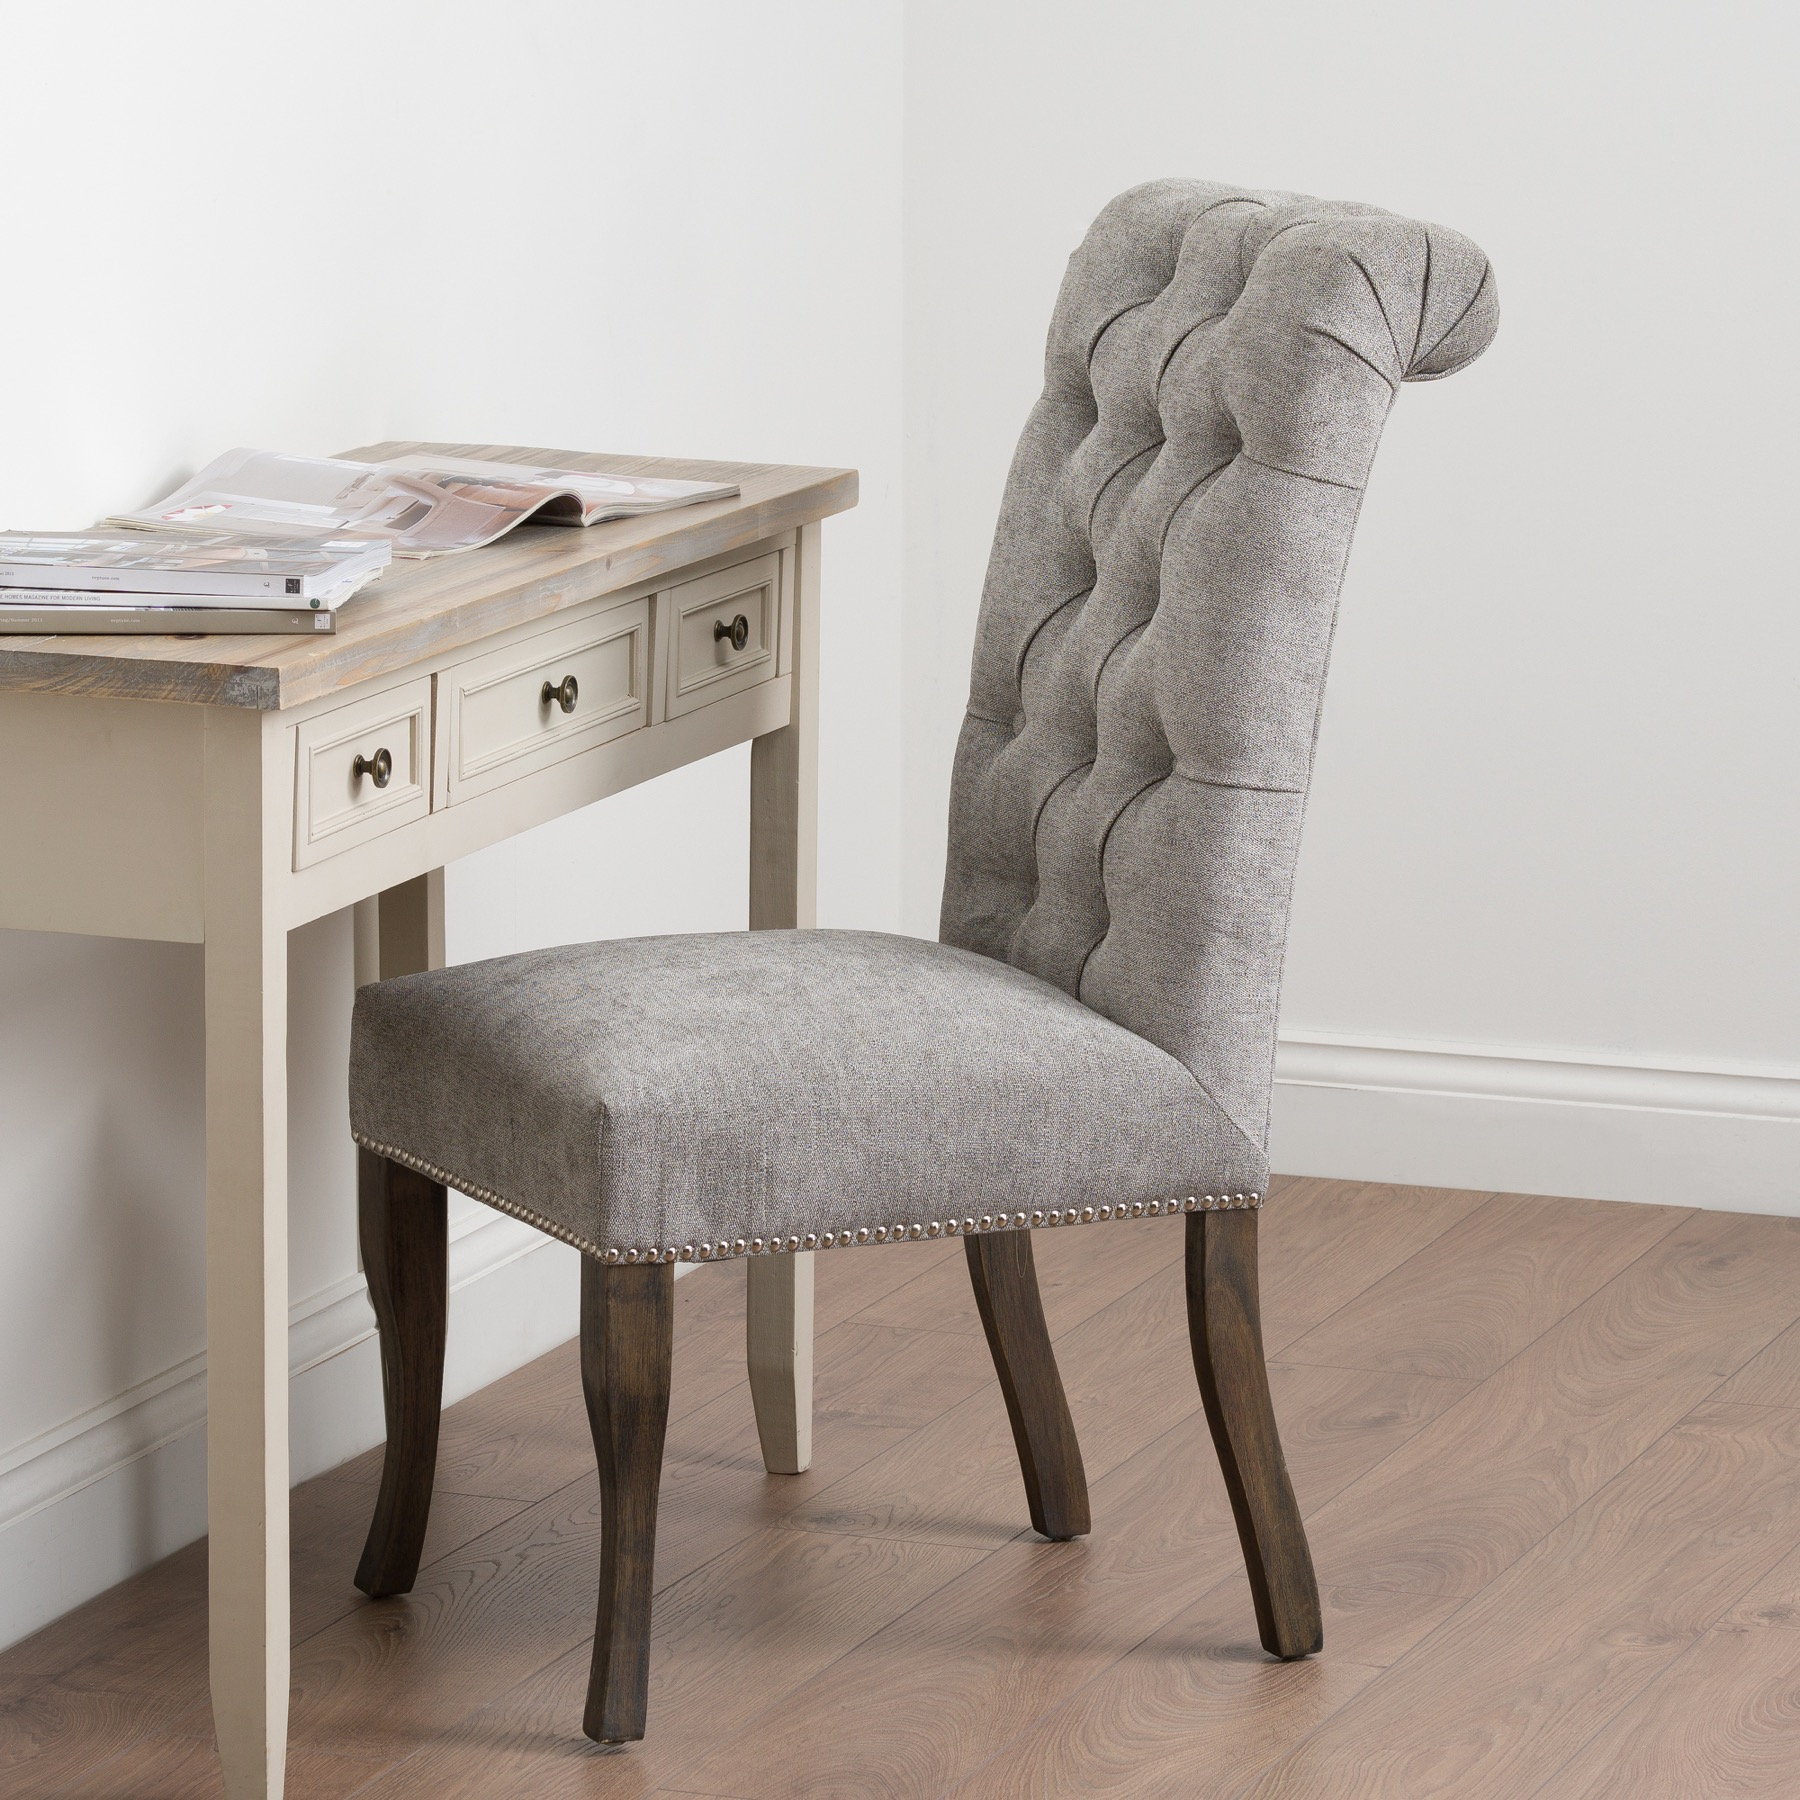 Silver Roll Top Dining Chair With Ring Pull - Image 7